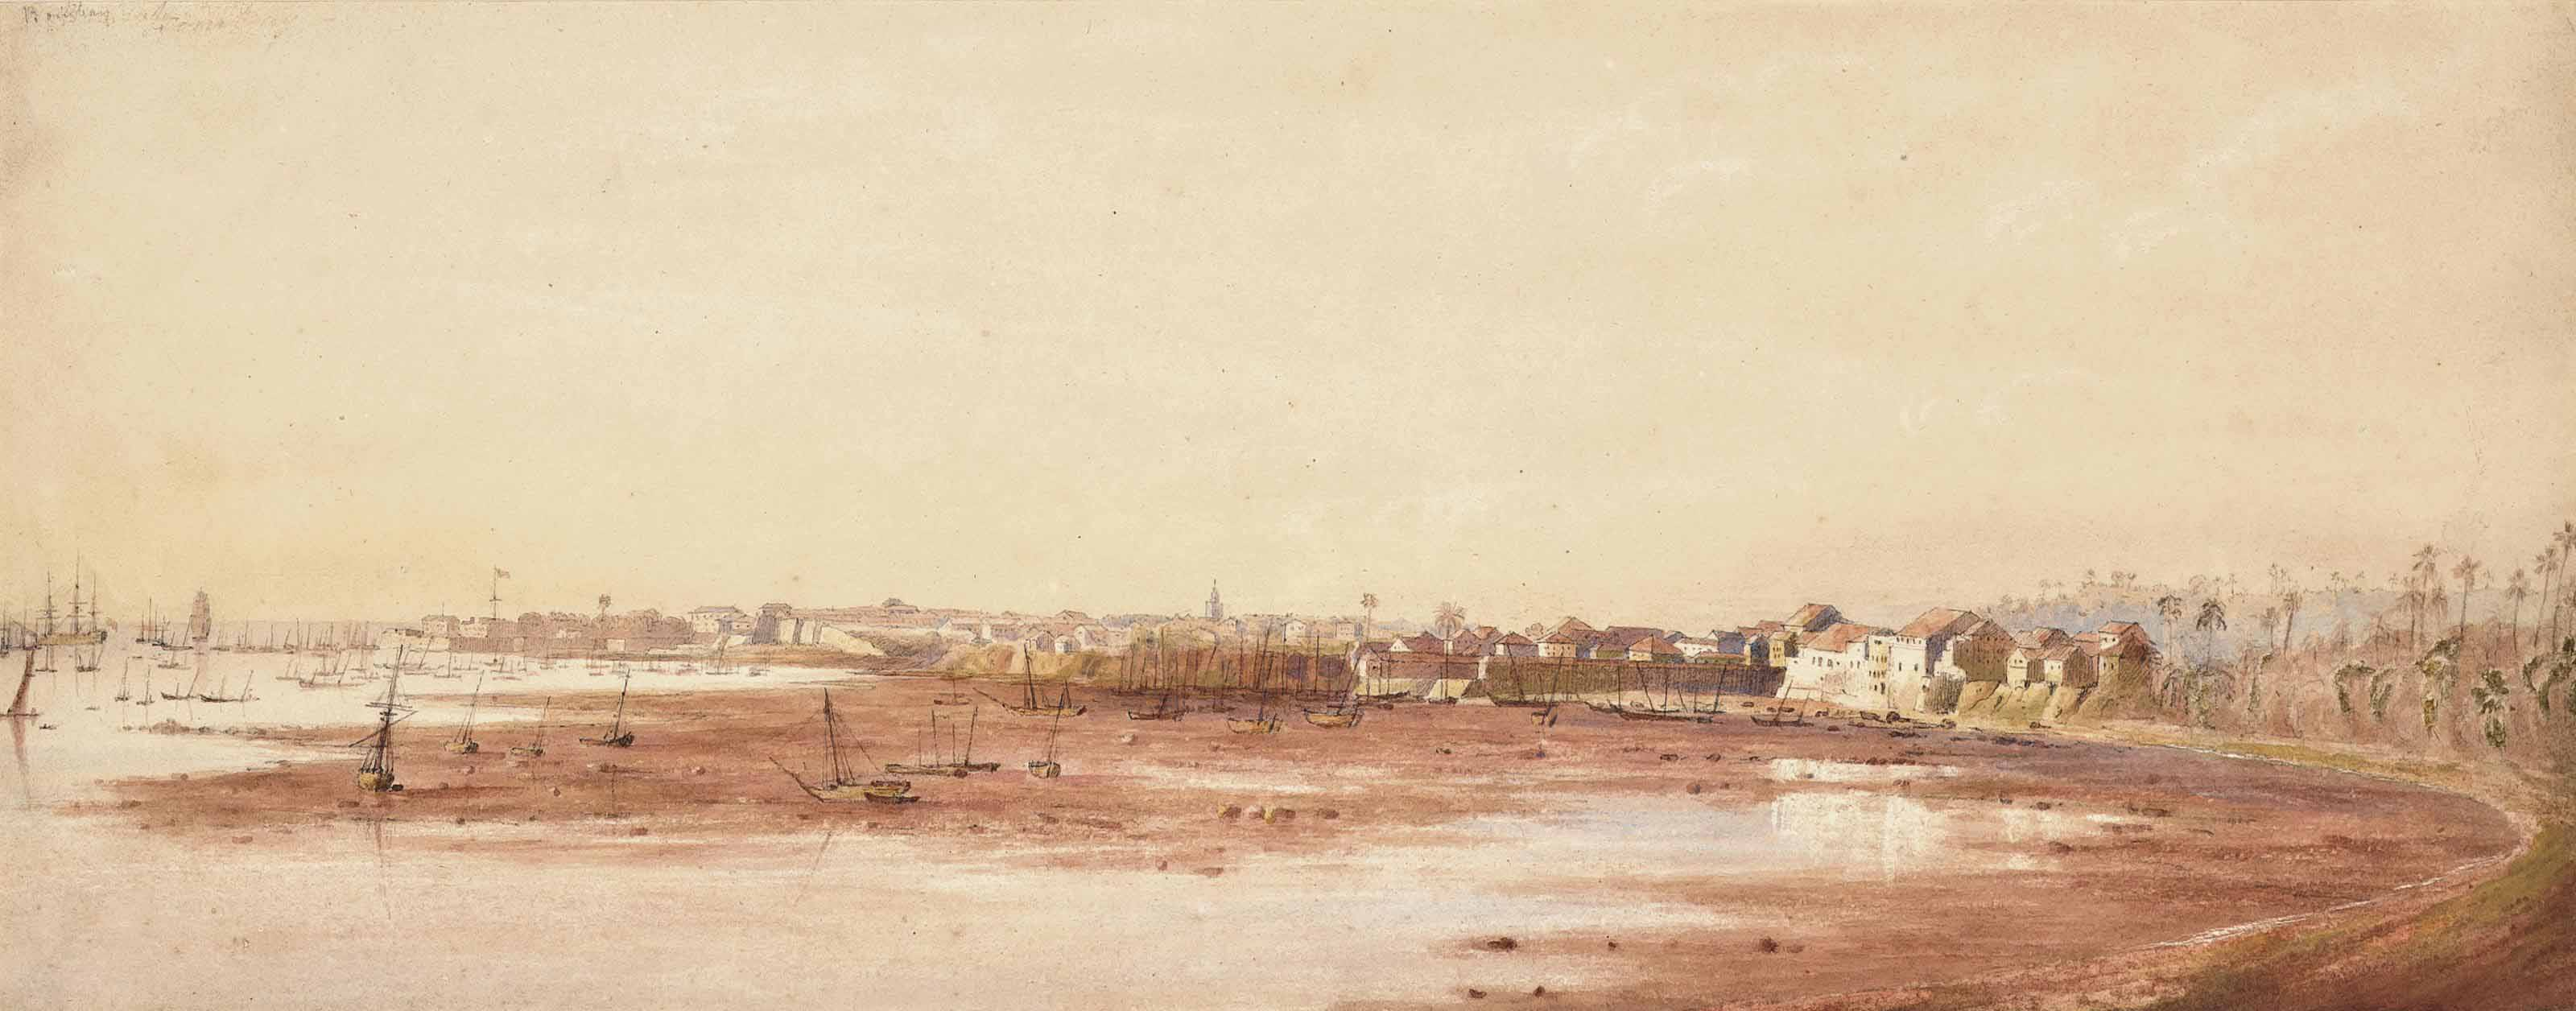 A view of Bombay